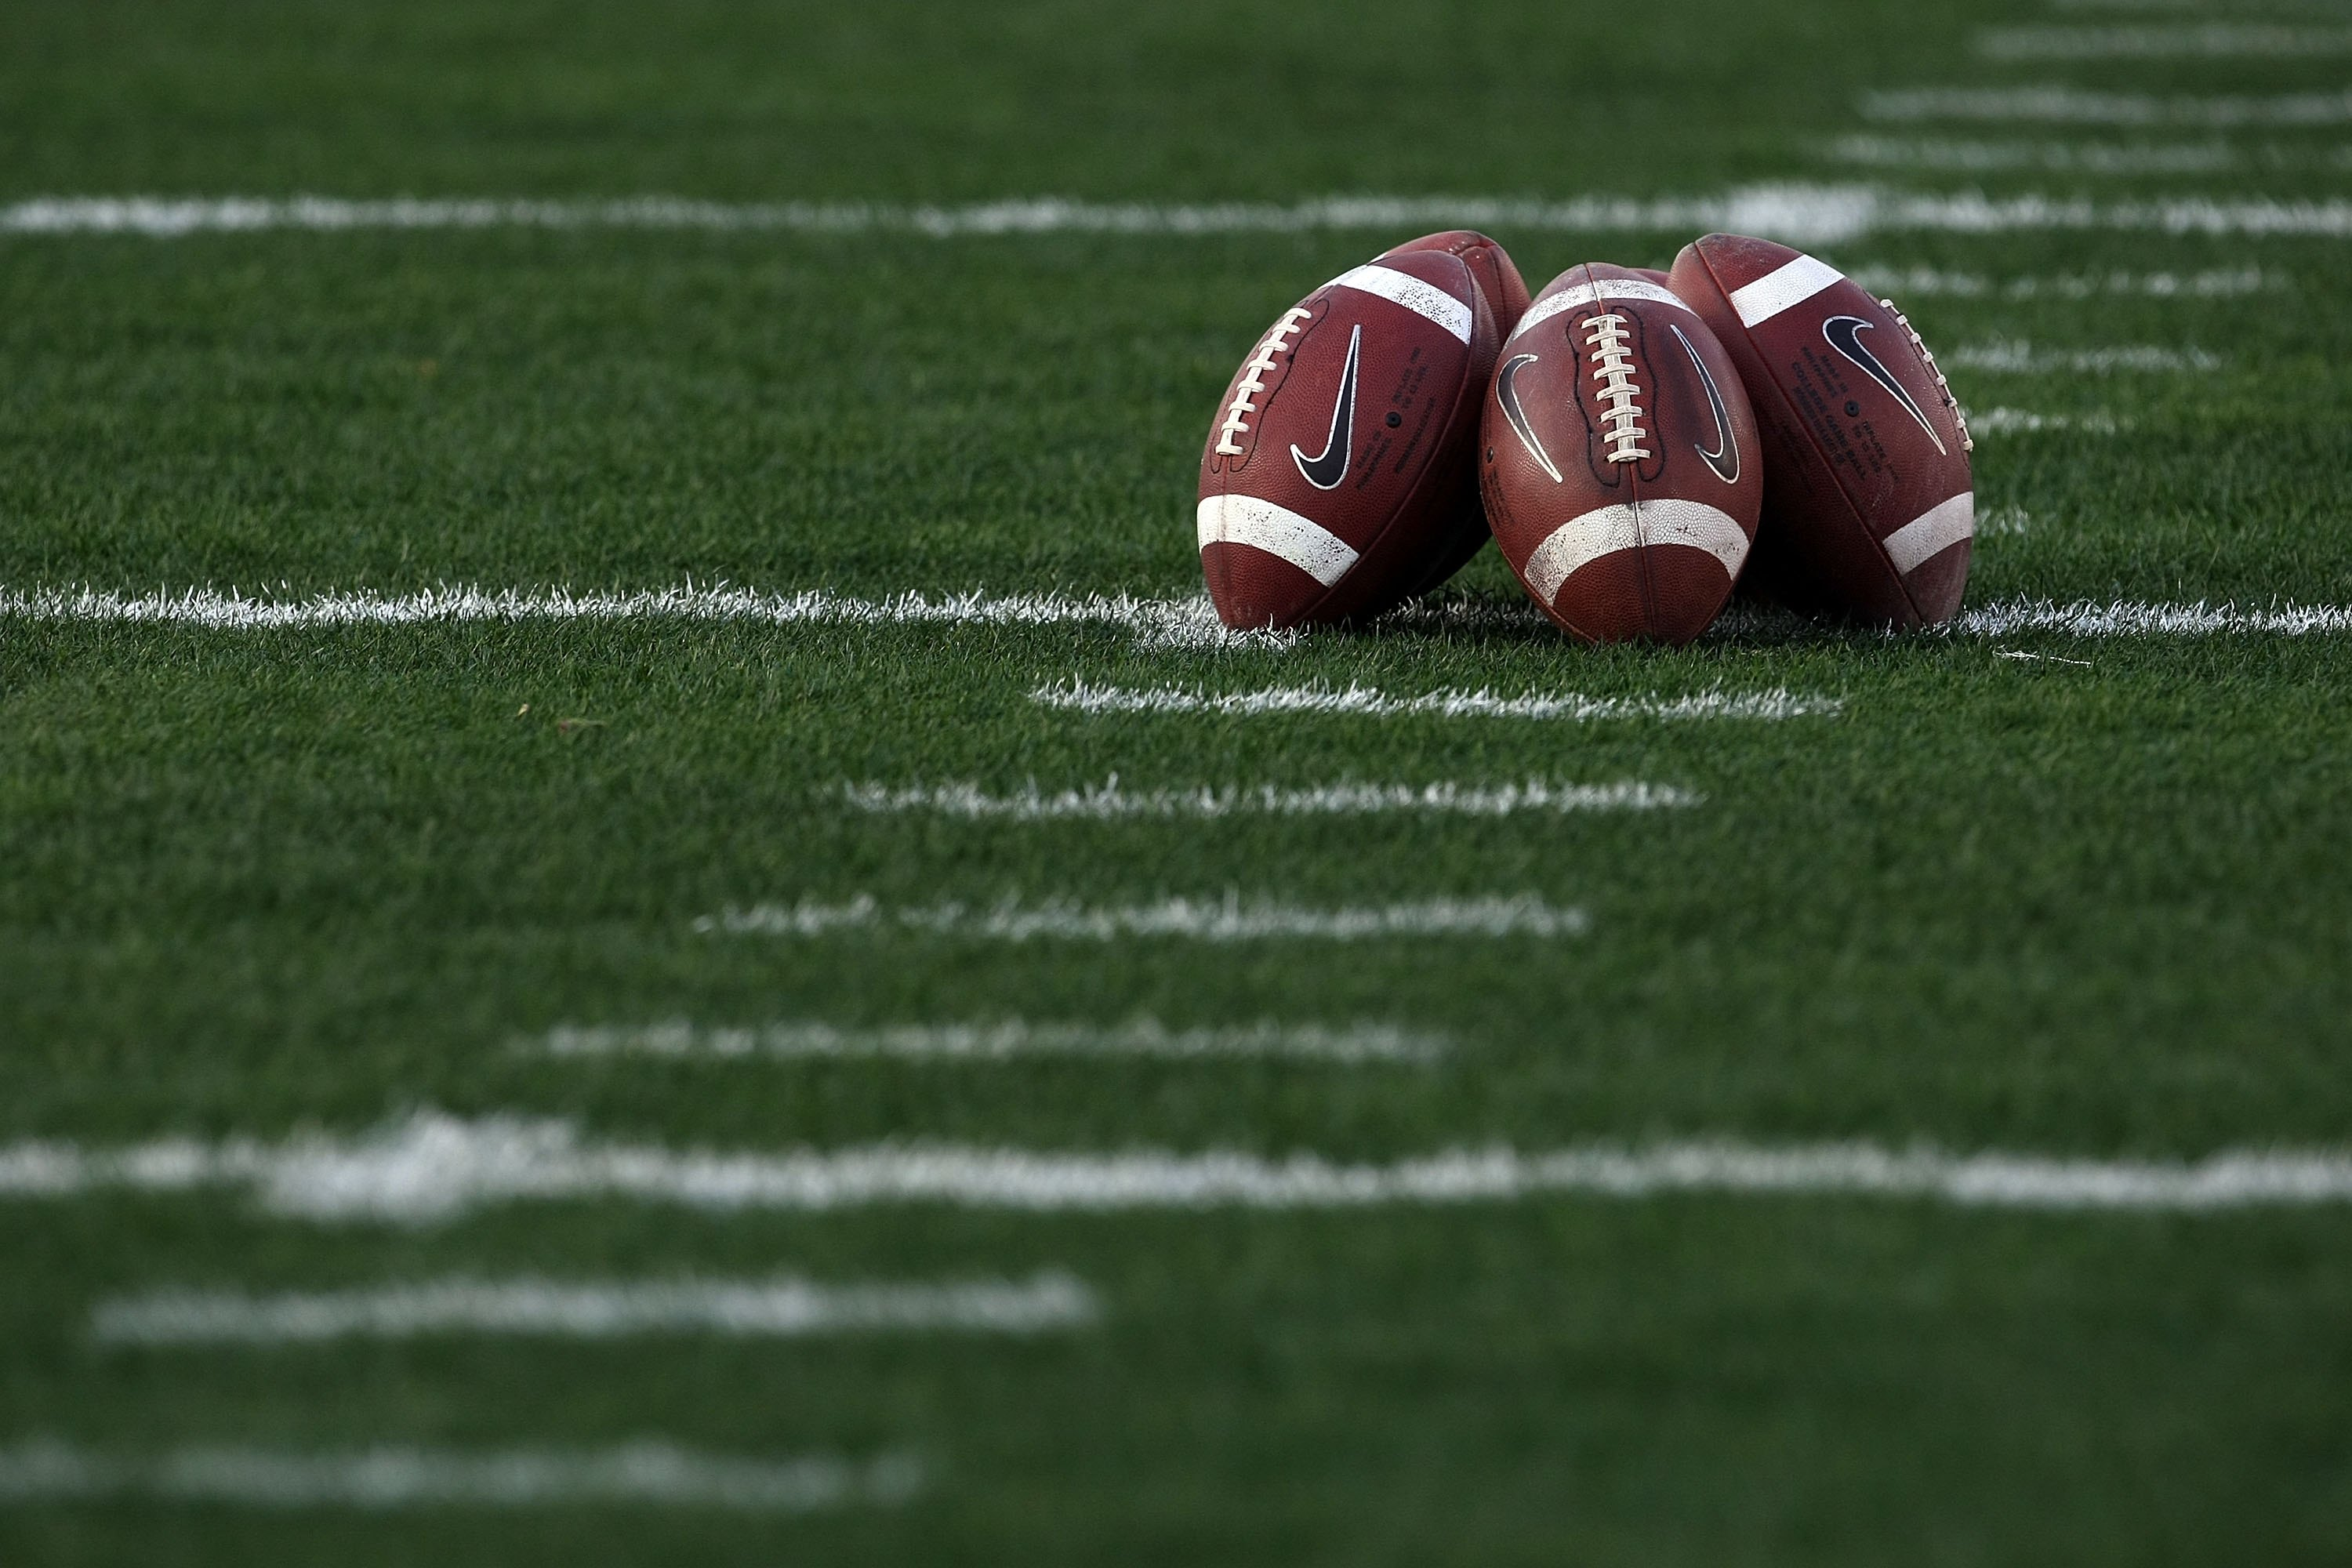 PASADENA, CA - JANUARY 07:  A detailed picture of footballs on the field prior to the Citi BCS National Championship game between the Texas Longhorns and the Alabama Crimson Tide at the Rose Bowl on January 7, 2010 in Pasadena, California.  (Photo by Stephen Dunn/Getty Images)